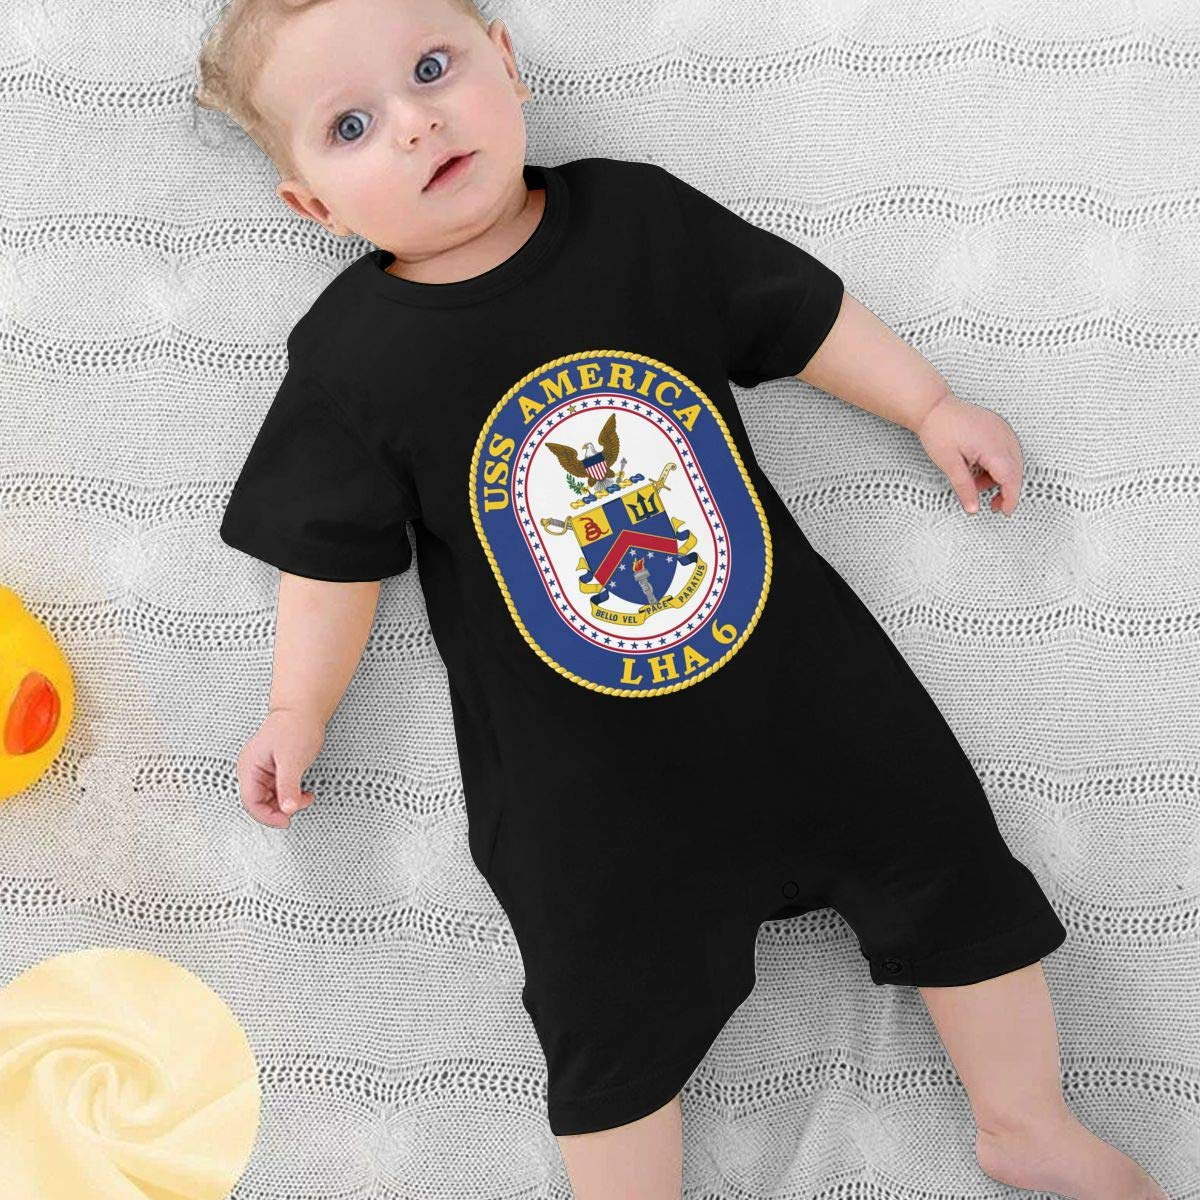 Baby Boys Girls Romper Jumpsuit USS America LHA-6 Newborn Short Sleeve Bodysuits Infant Outfit Funny Onesie for 0-2T